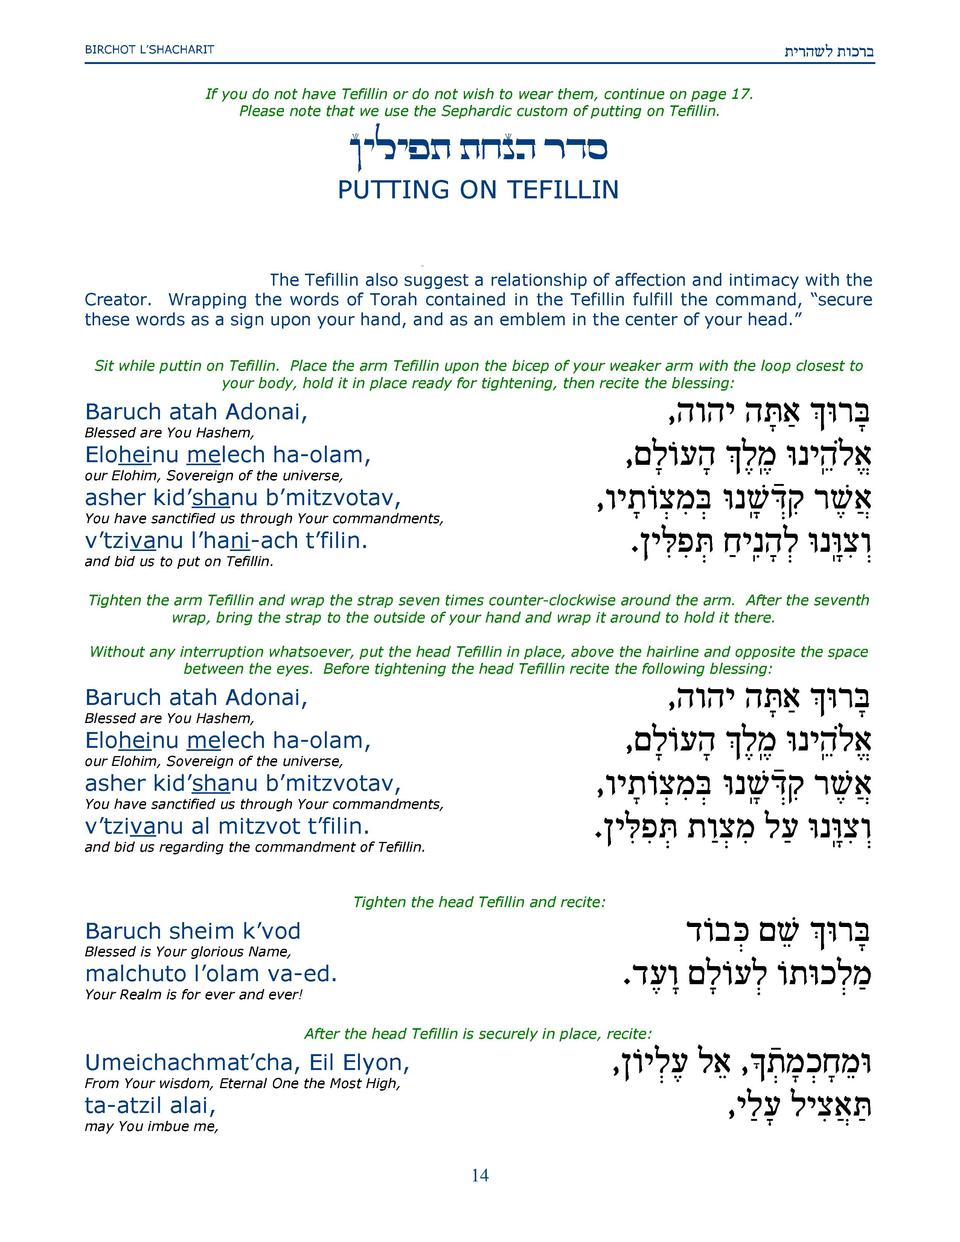 zixdyl zekxa  BIRCHOT L   SHACHARIT  If you do not have Tefillin or do not wish to wear them, continue on page 17. Please ...